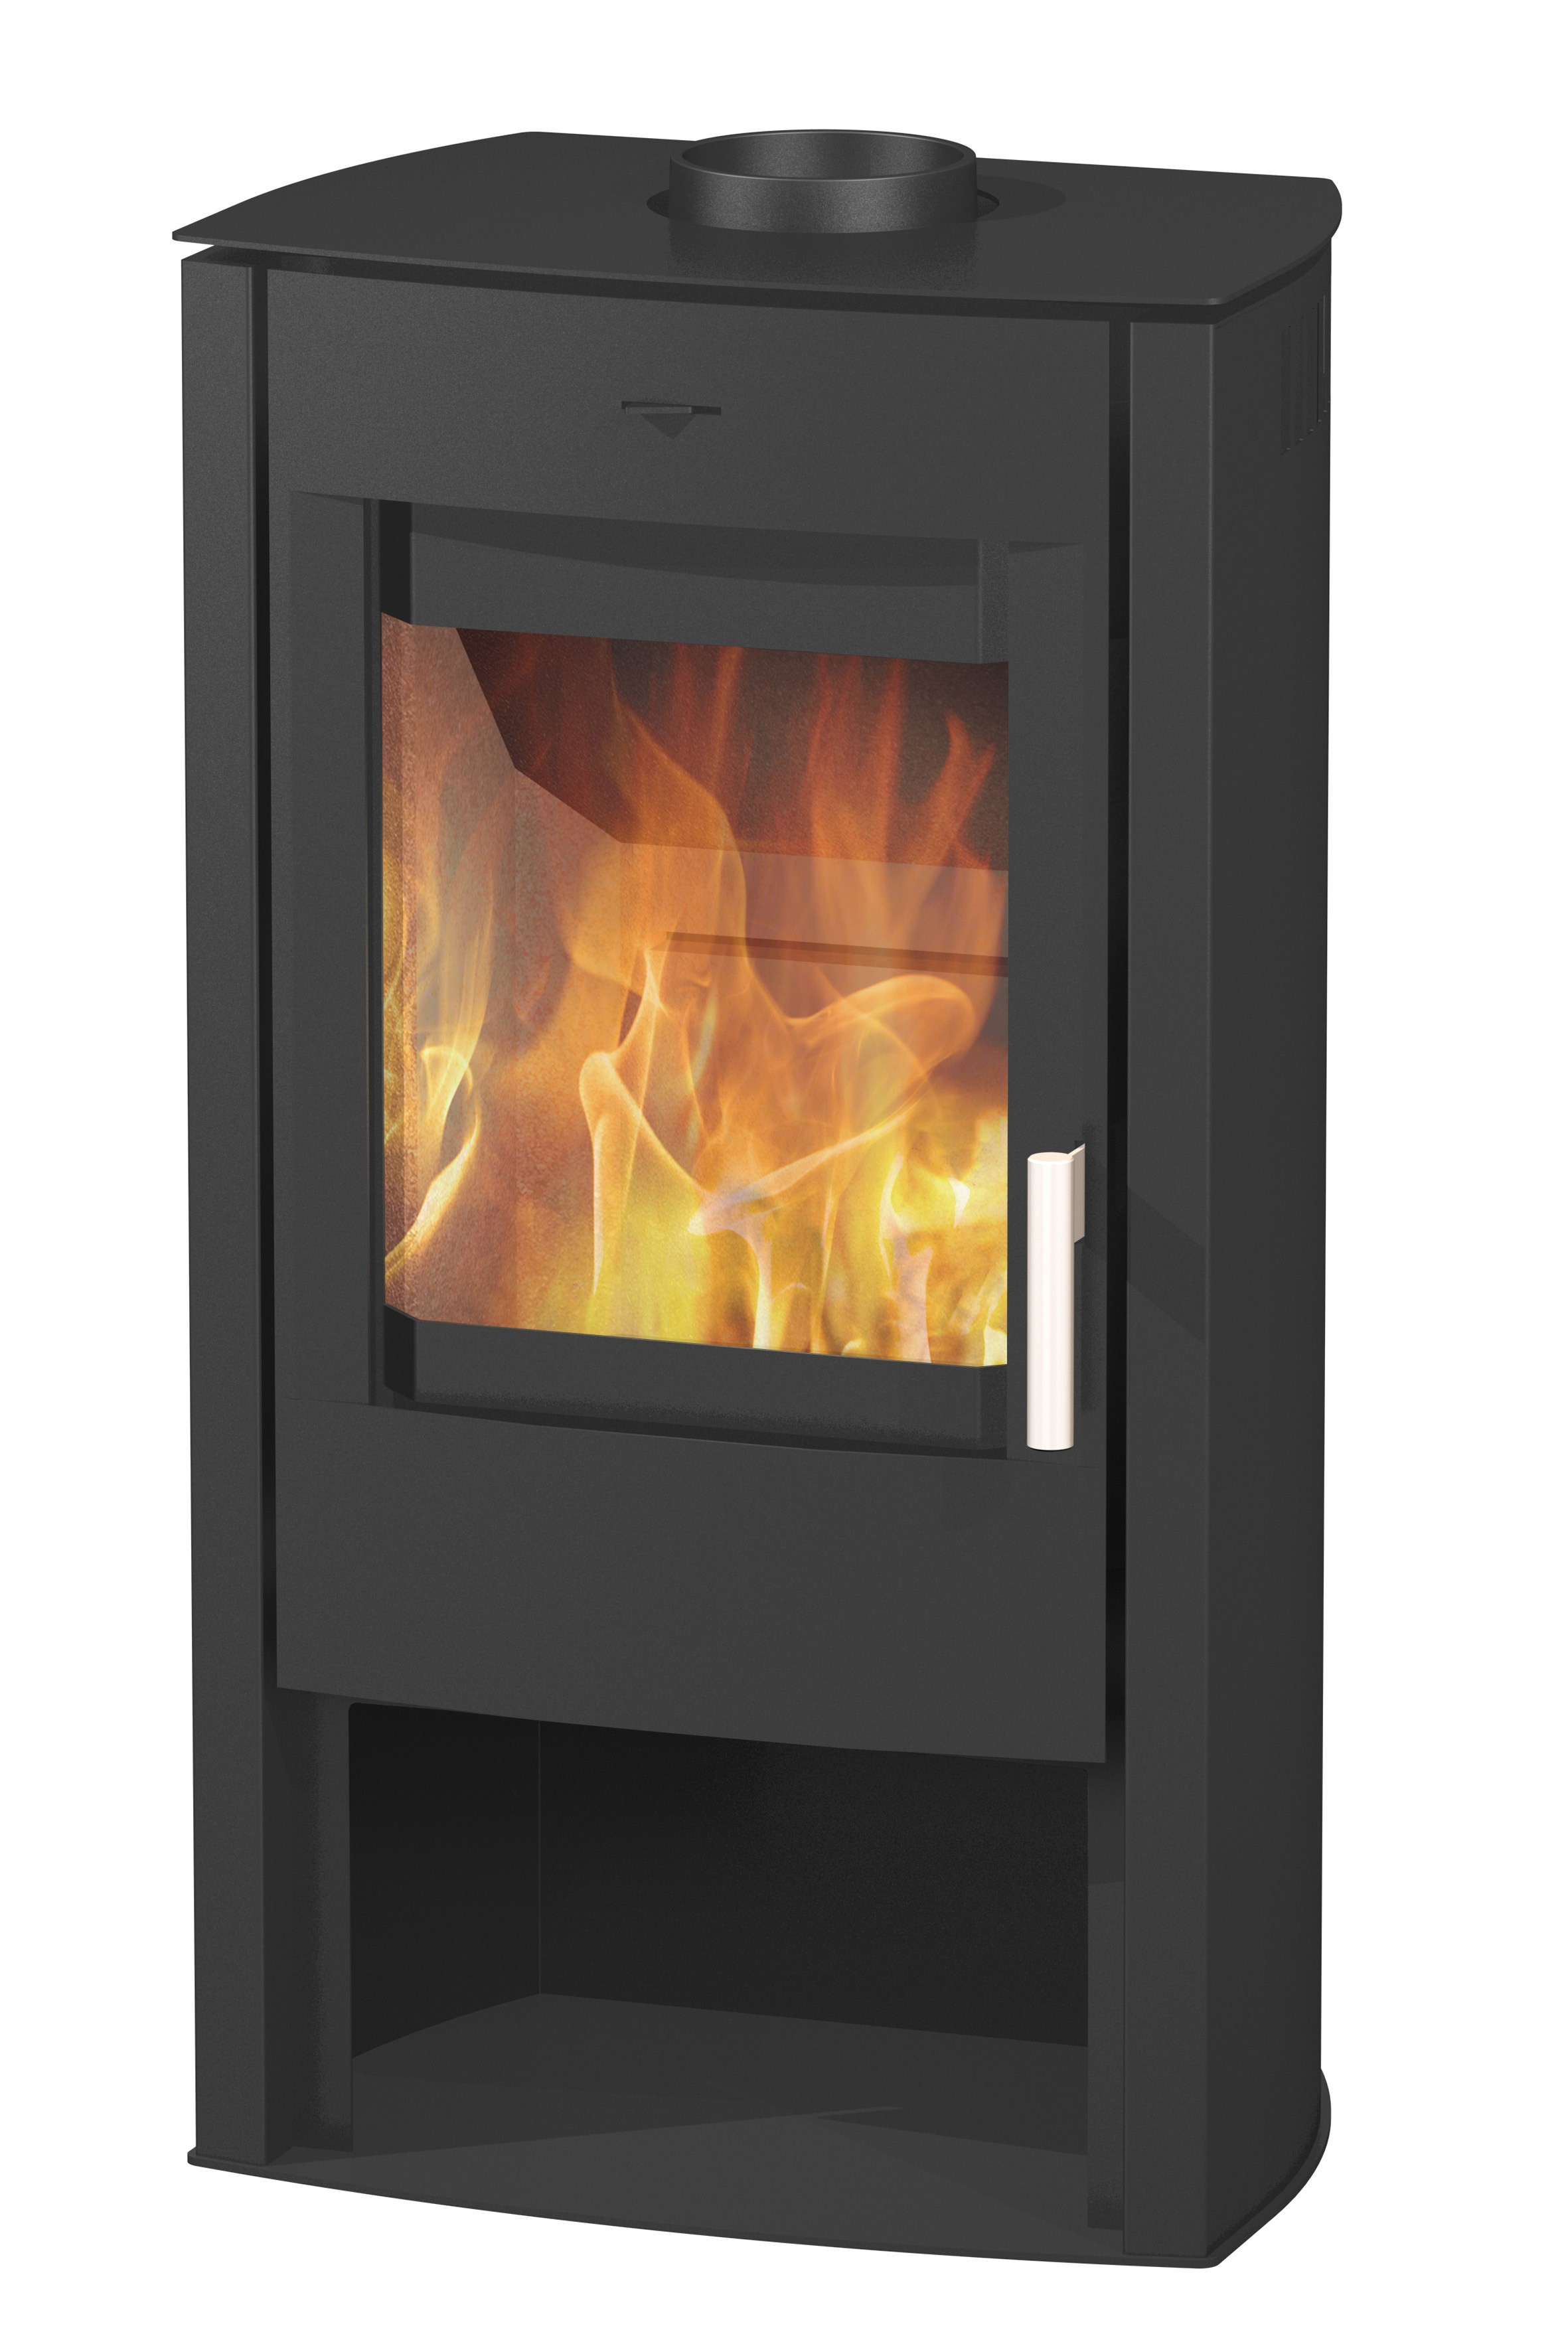 kaminofen fireplace tuvalu stahl schwarz 6kw bei. Black Bedroom Furniture Sets. Home Design Ideas